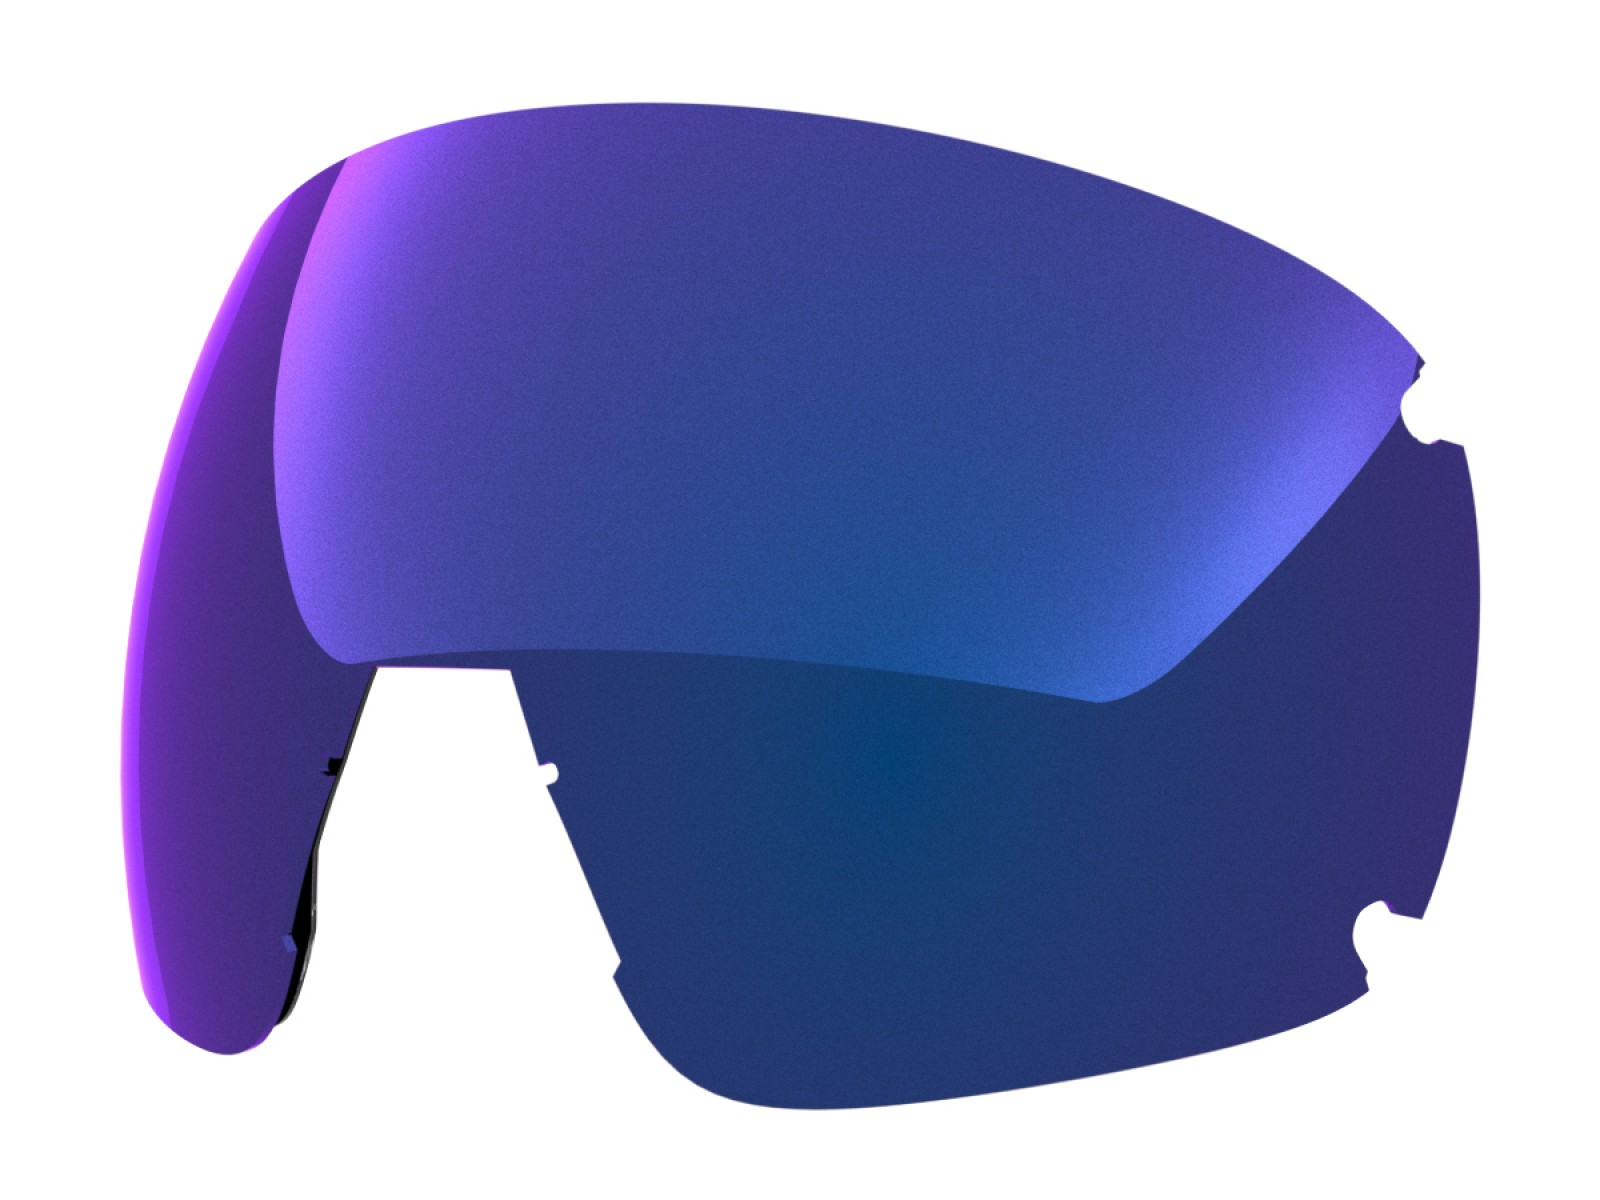 BLUE MCI LENS FOR EARTH SNOW GOGGLE